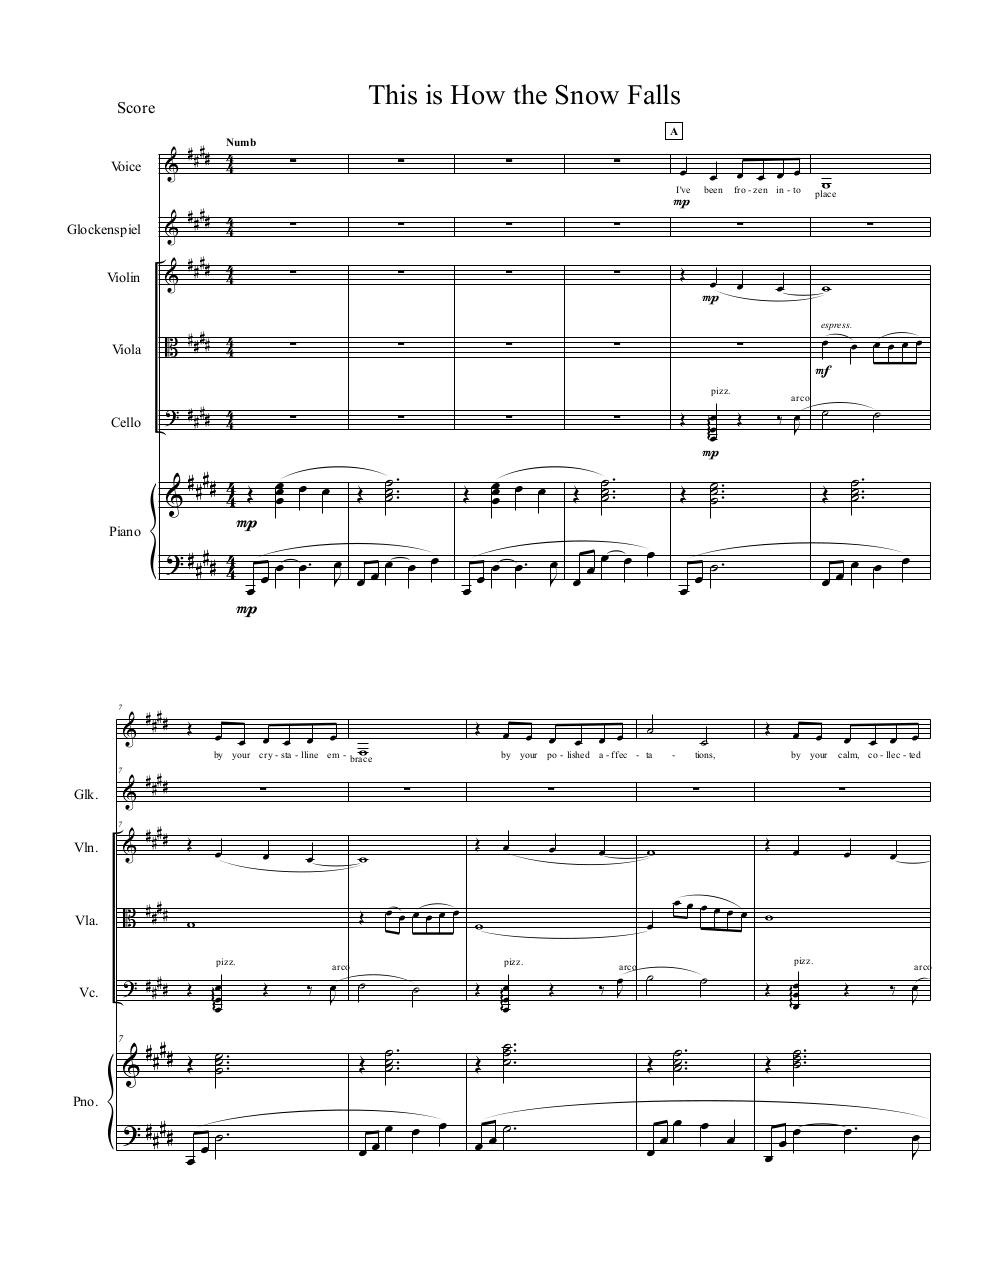 This is How the Snow Falls Piano Score.pdf - page 1/9